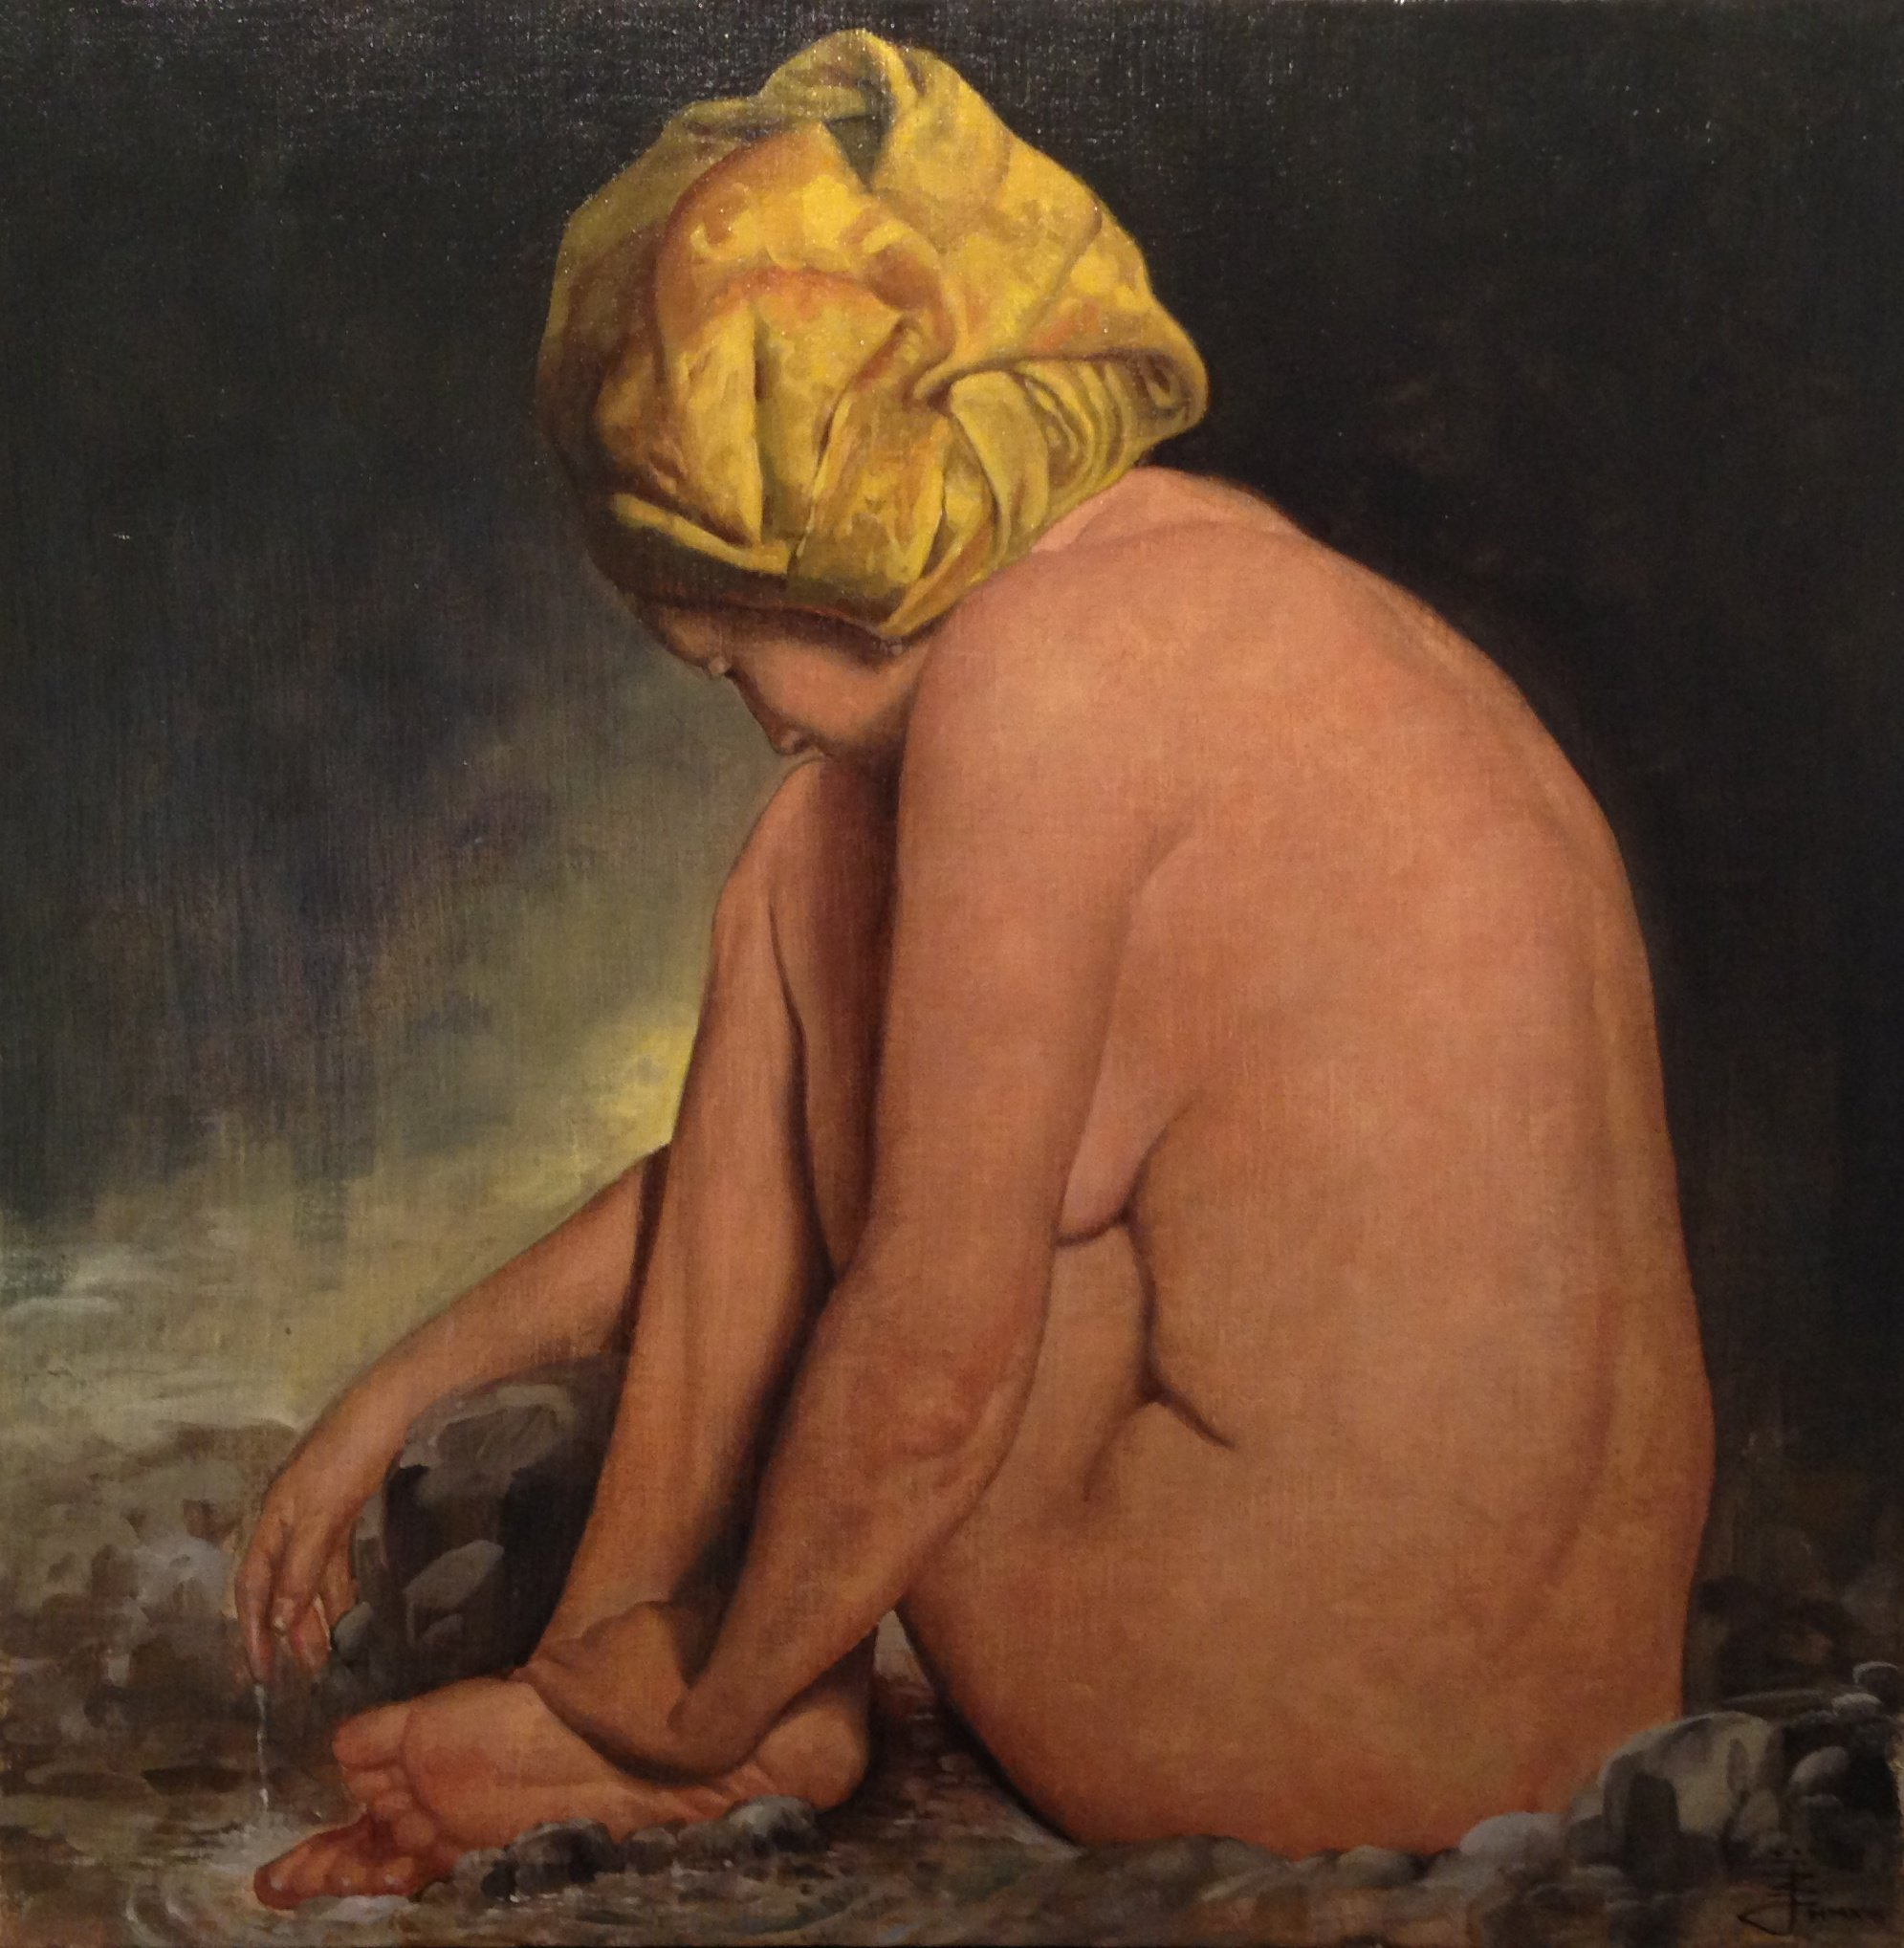 Luca Battini - Nude with YellowTruban.jpg